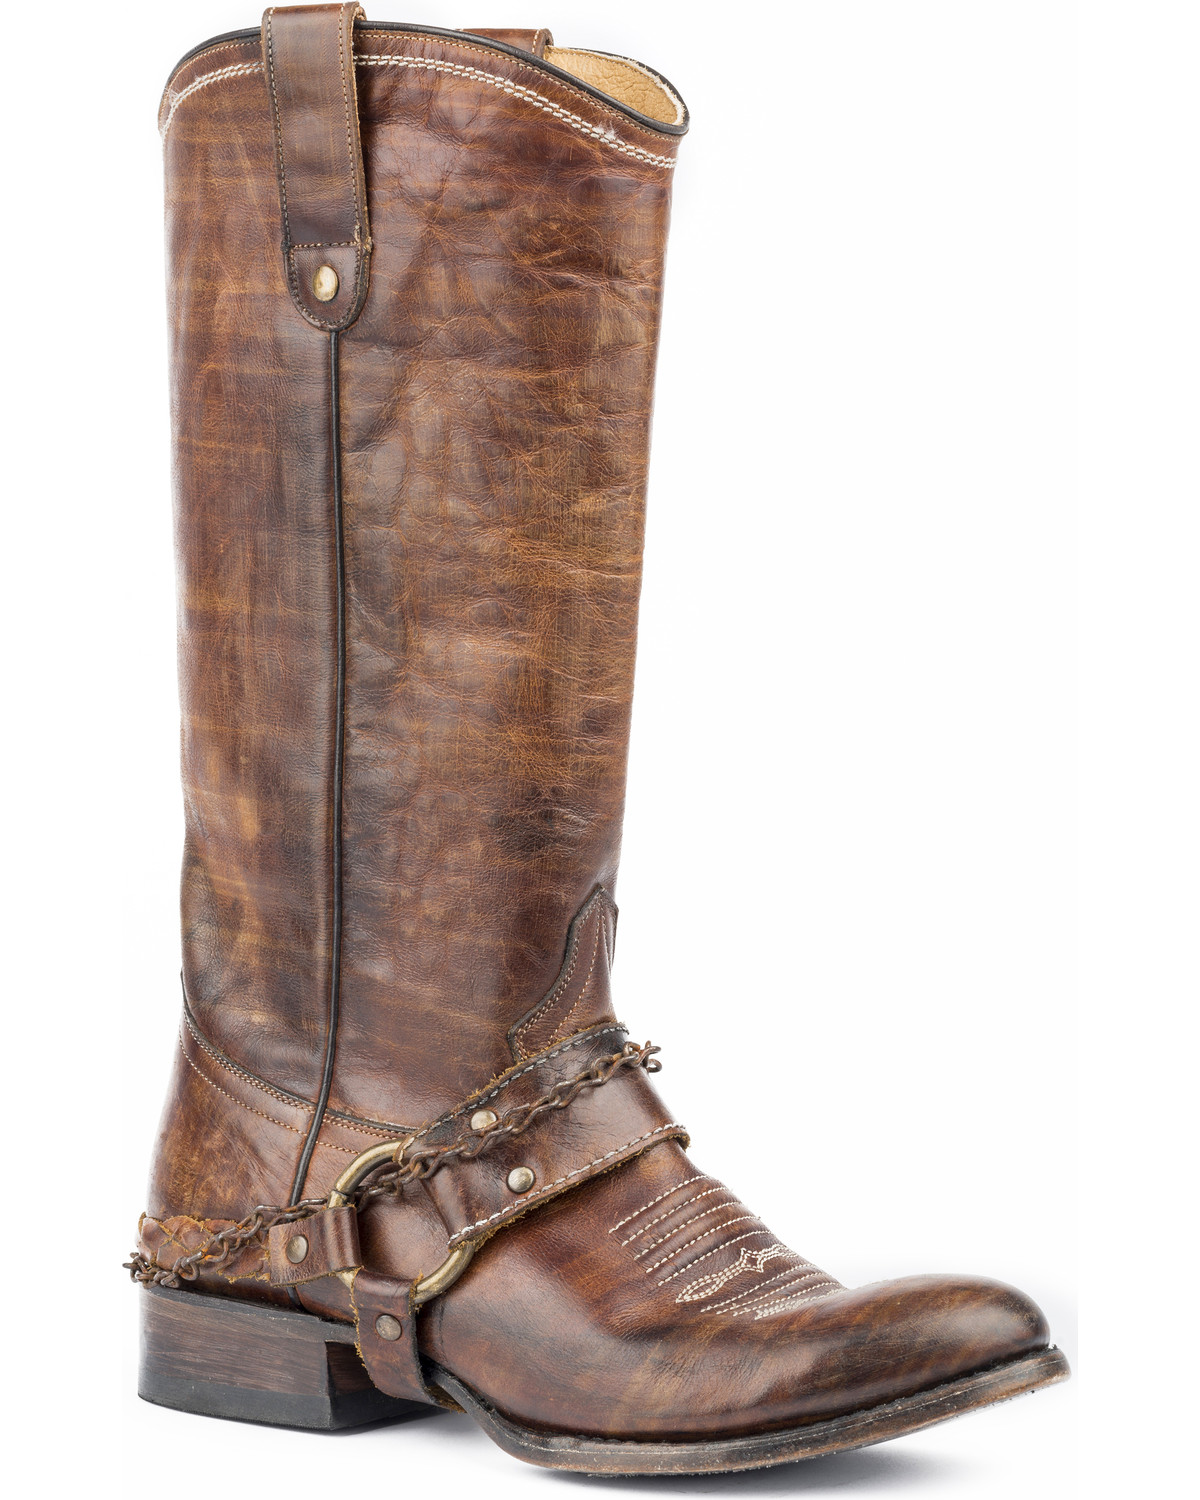 0ffbd11039752 Roper Women's Selah Vintage Brown Leather Harness Boots - Round Toe